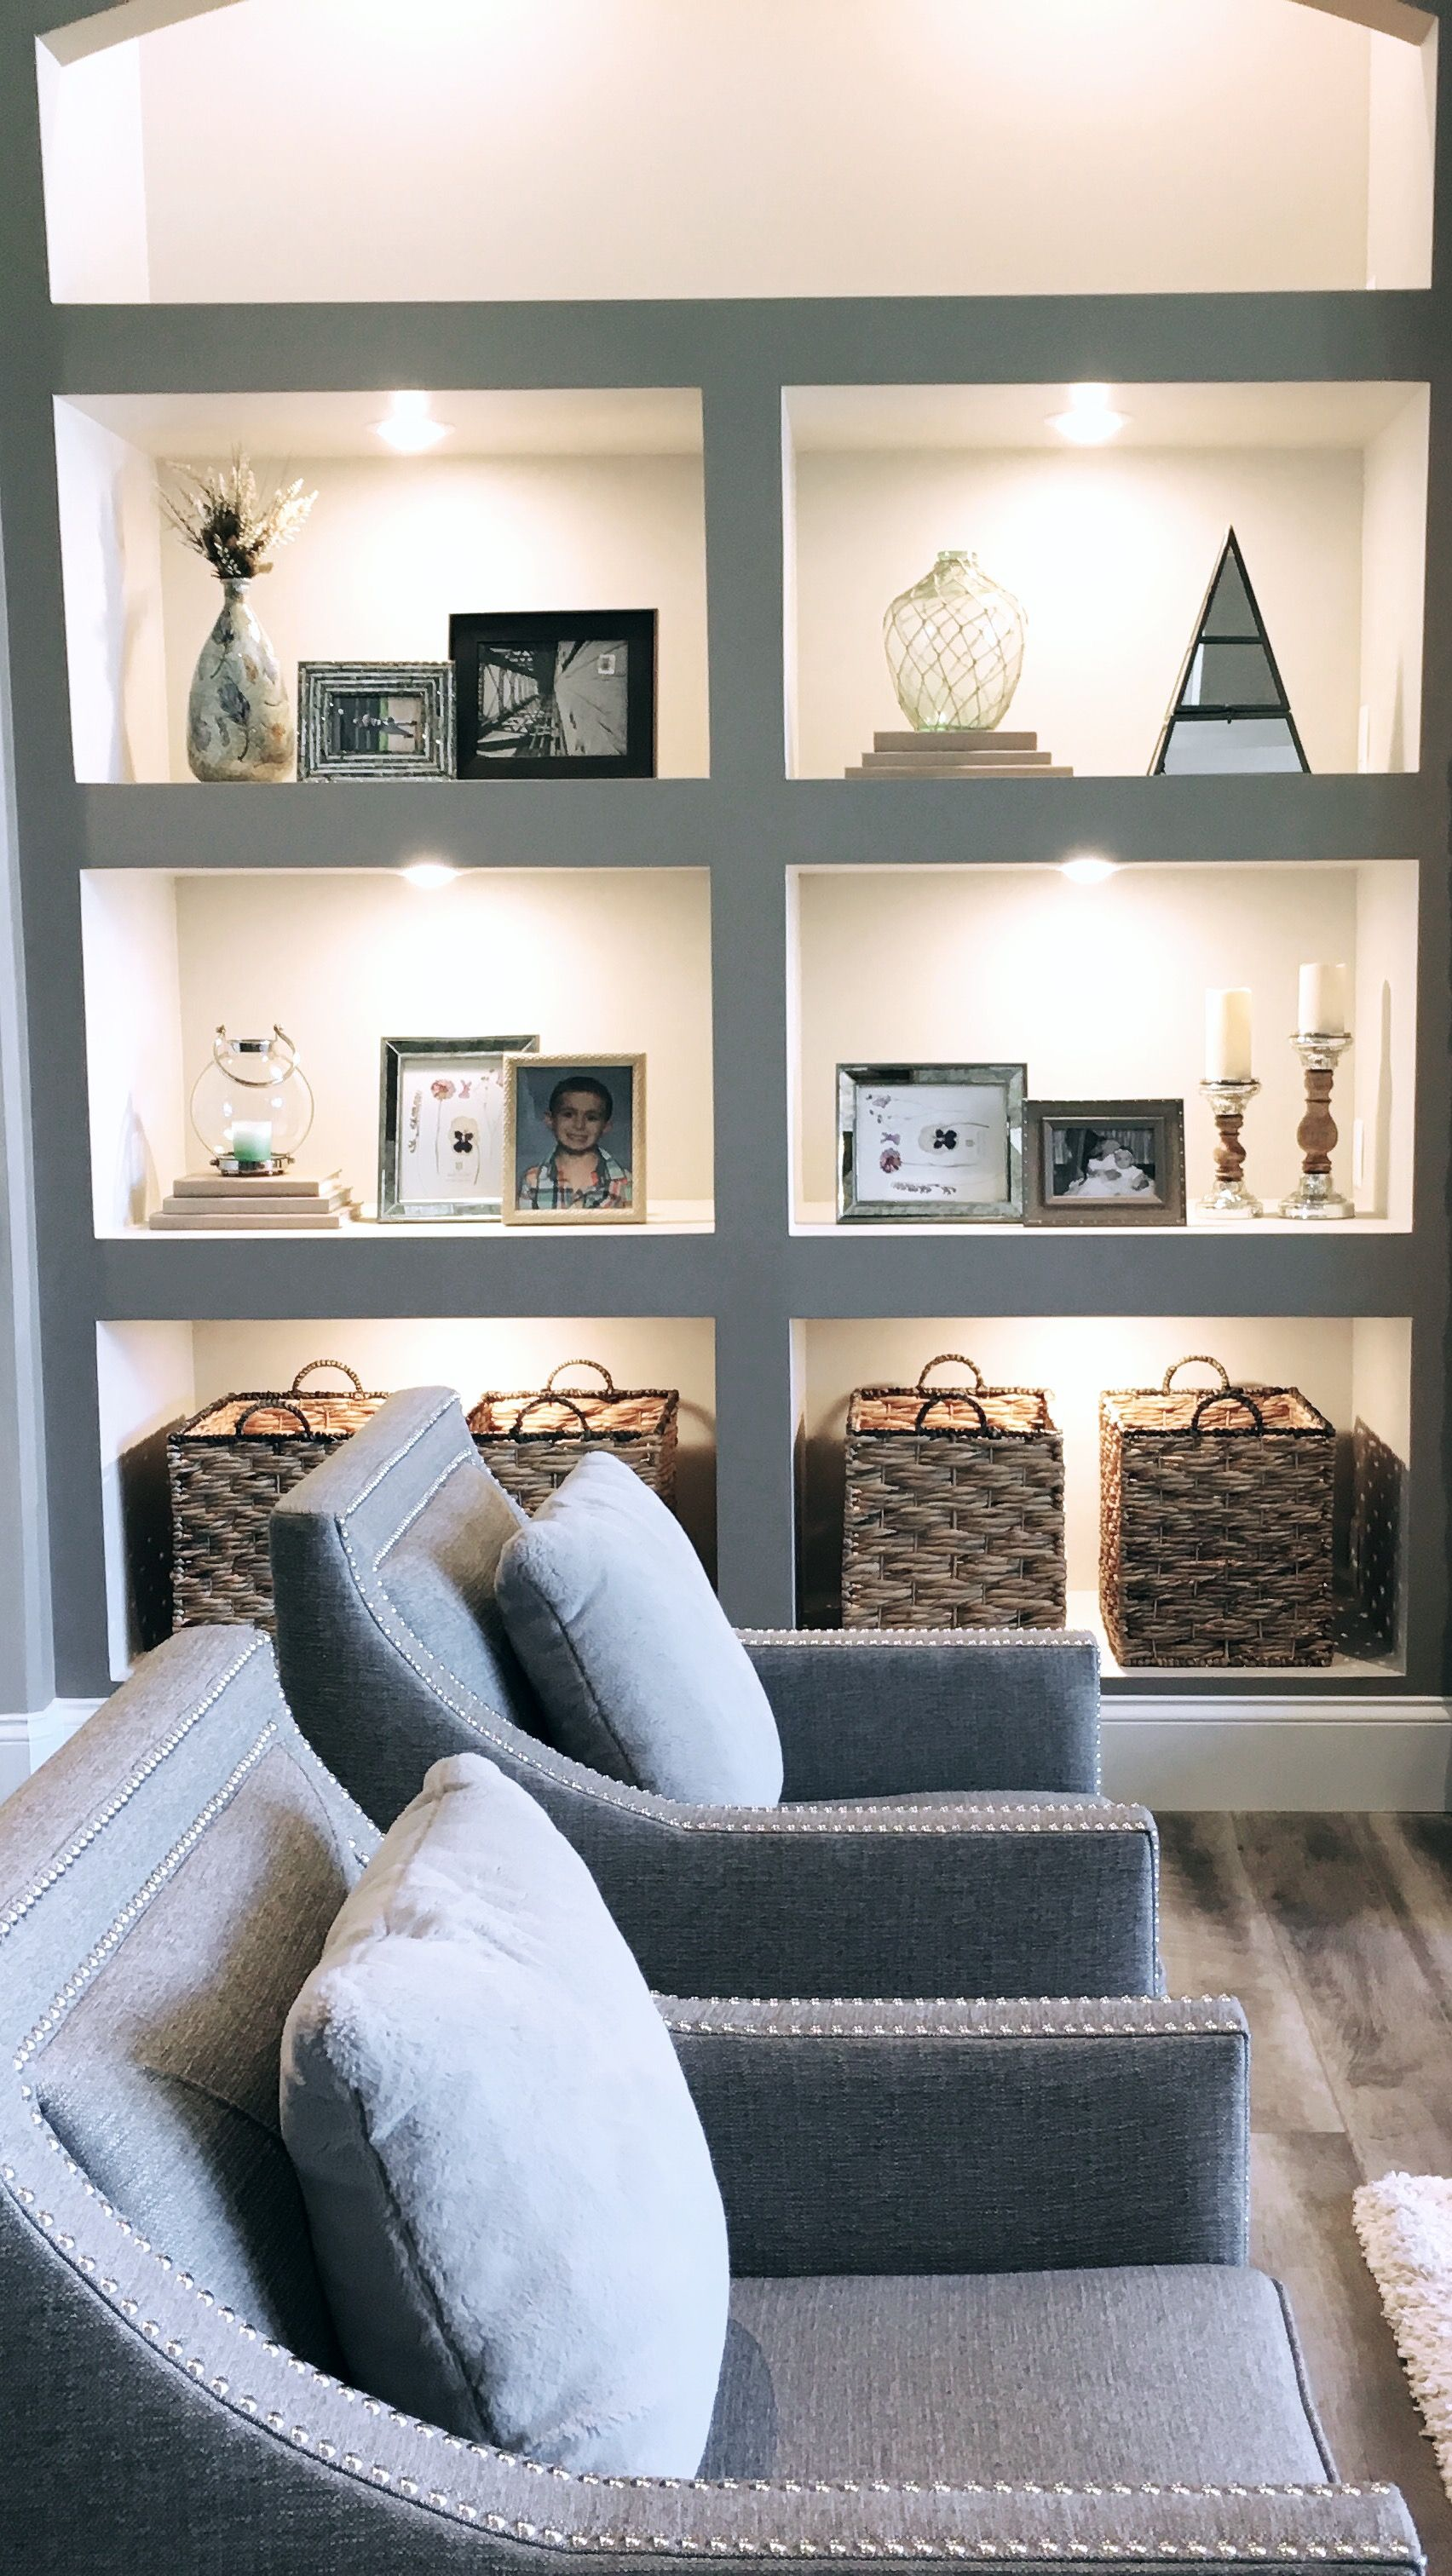 How To Decorate Deep Built-in Shelves Using Transitional Home Decor